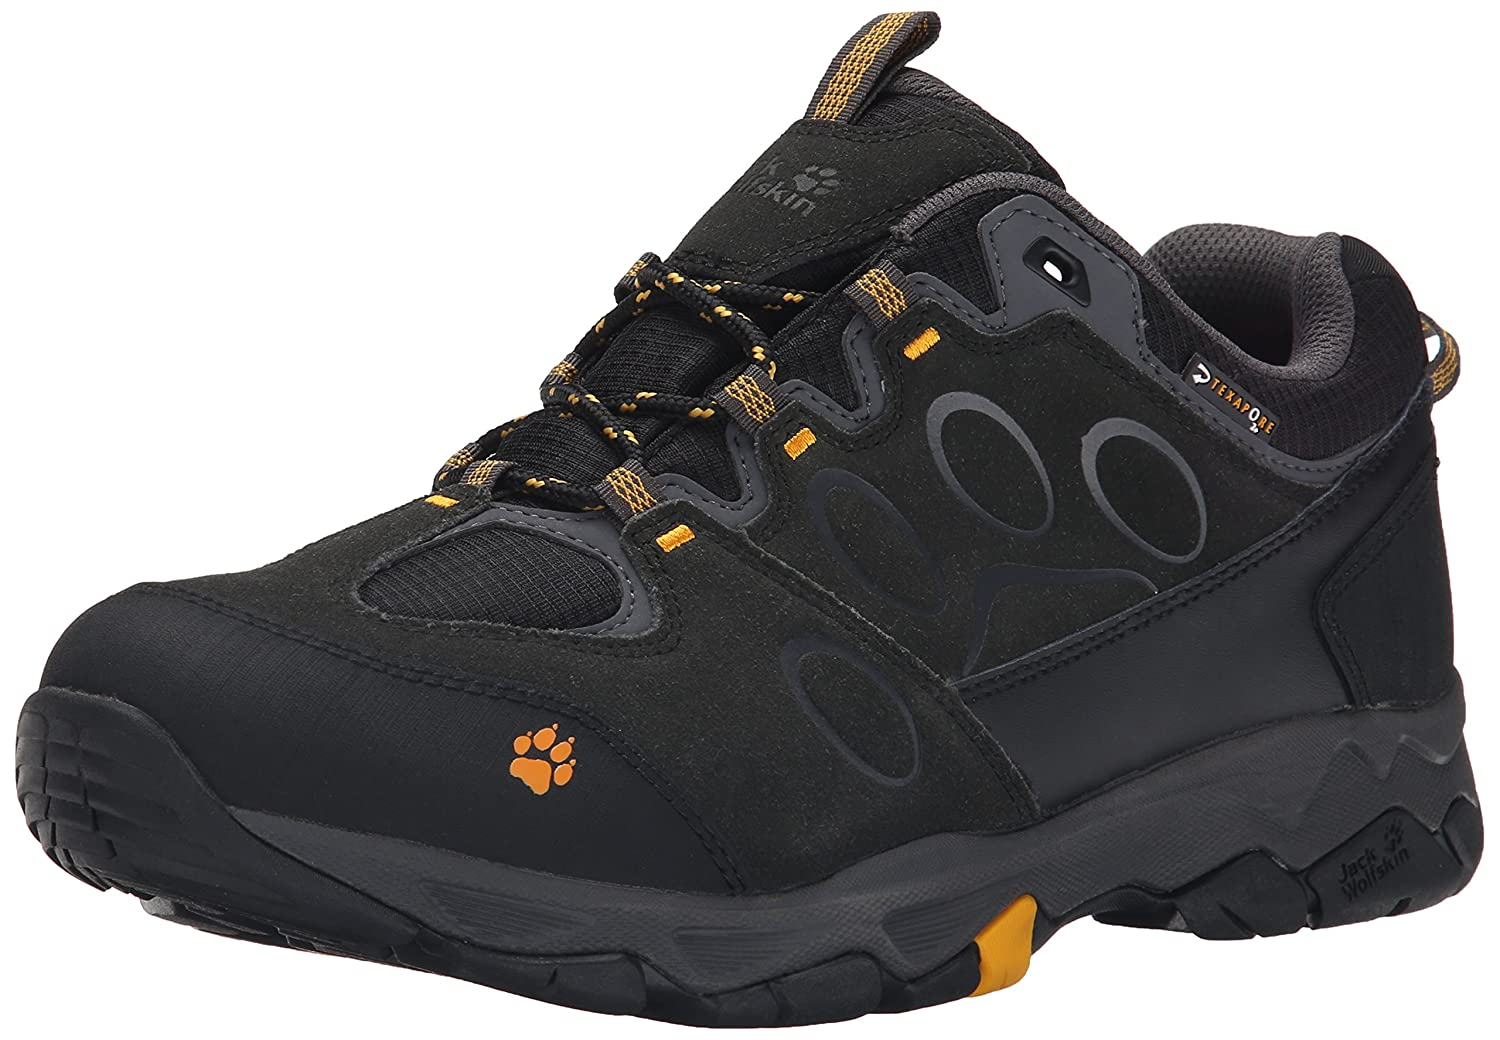 Womens Monterey Air Low W Multisport Outdoor Shoes, One Size Jack Wolfskin